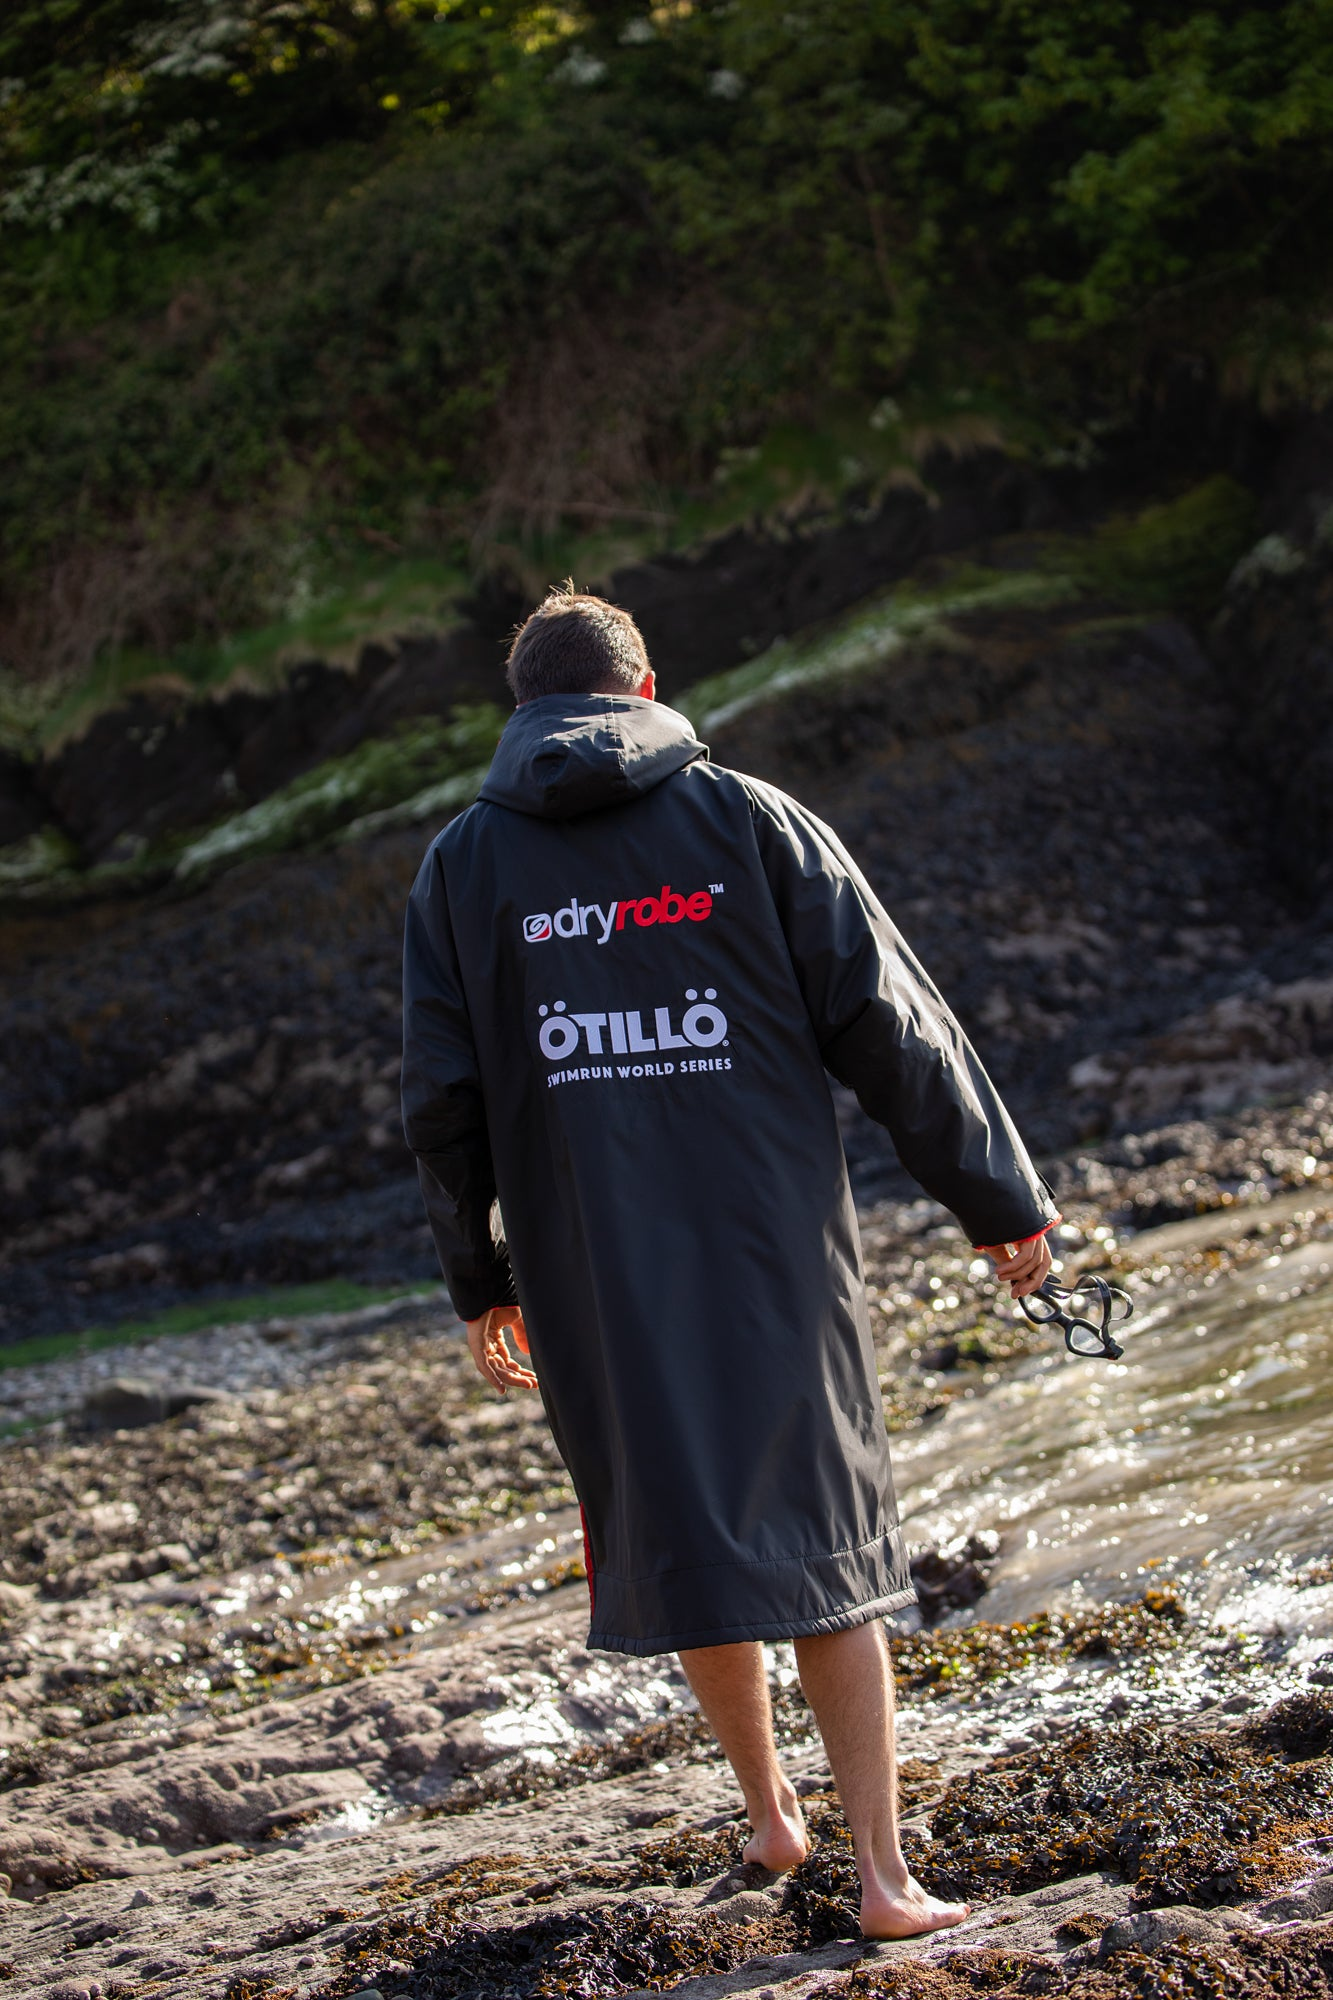 Otillo dryrobe back